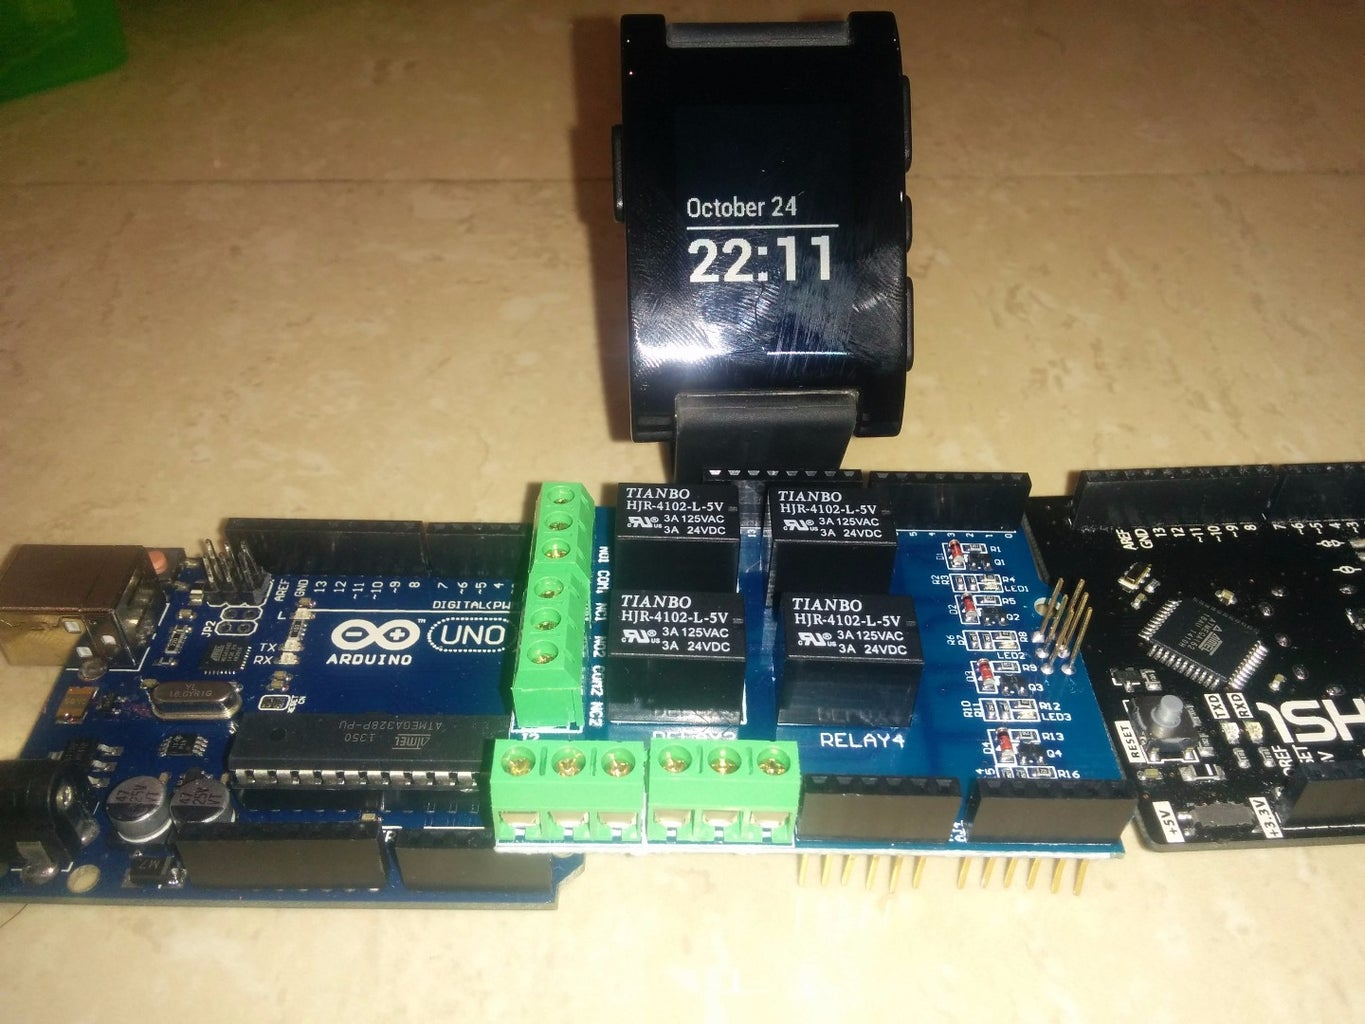 Hacking Any Car With the Pebble Watch and 1Sheeld